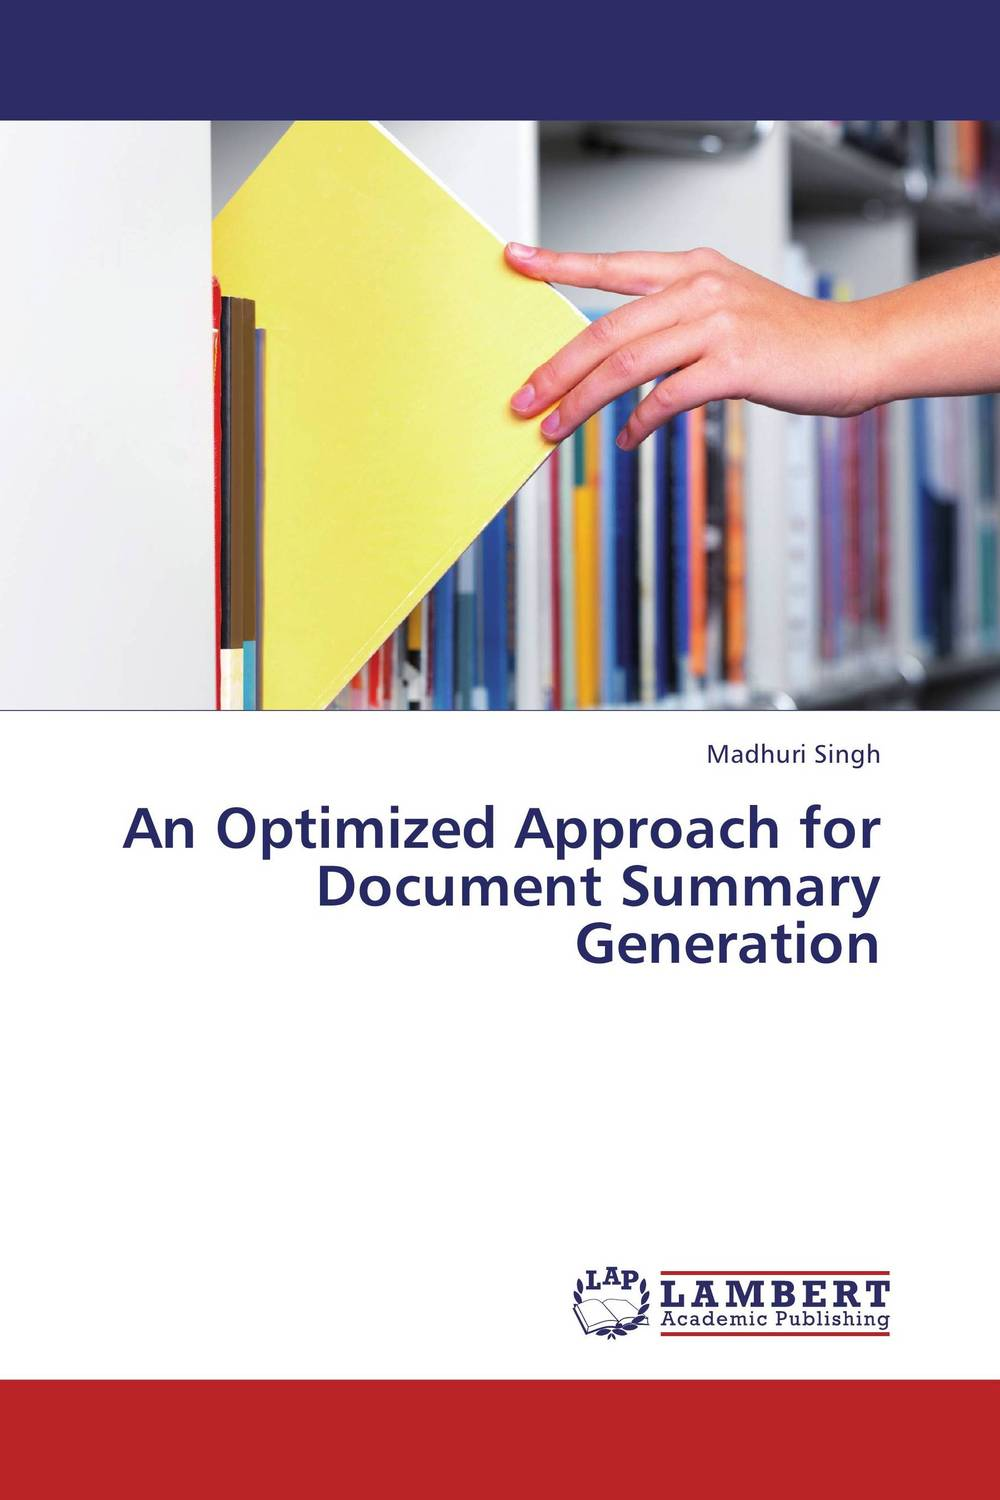 An Optimized Approach for Document Summary Generation